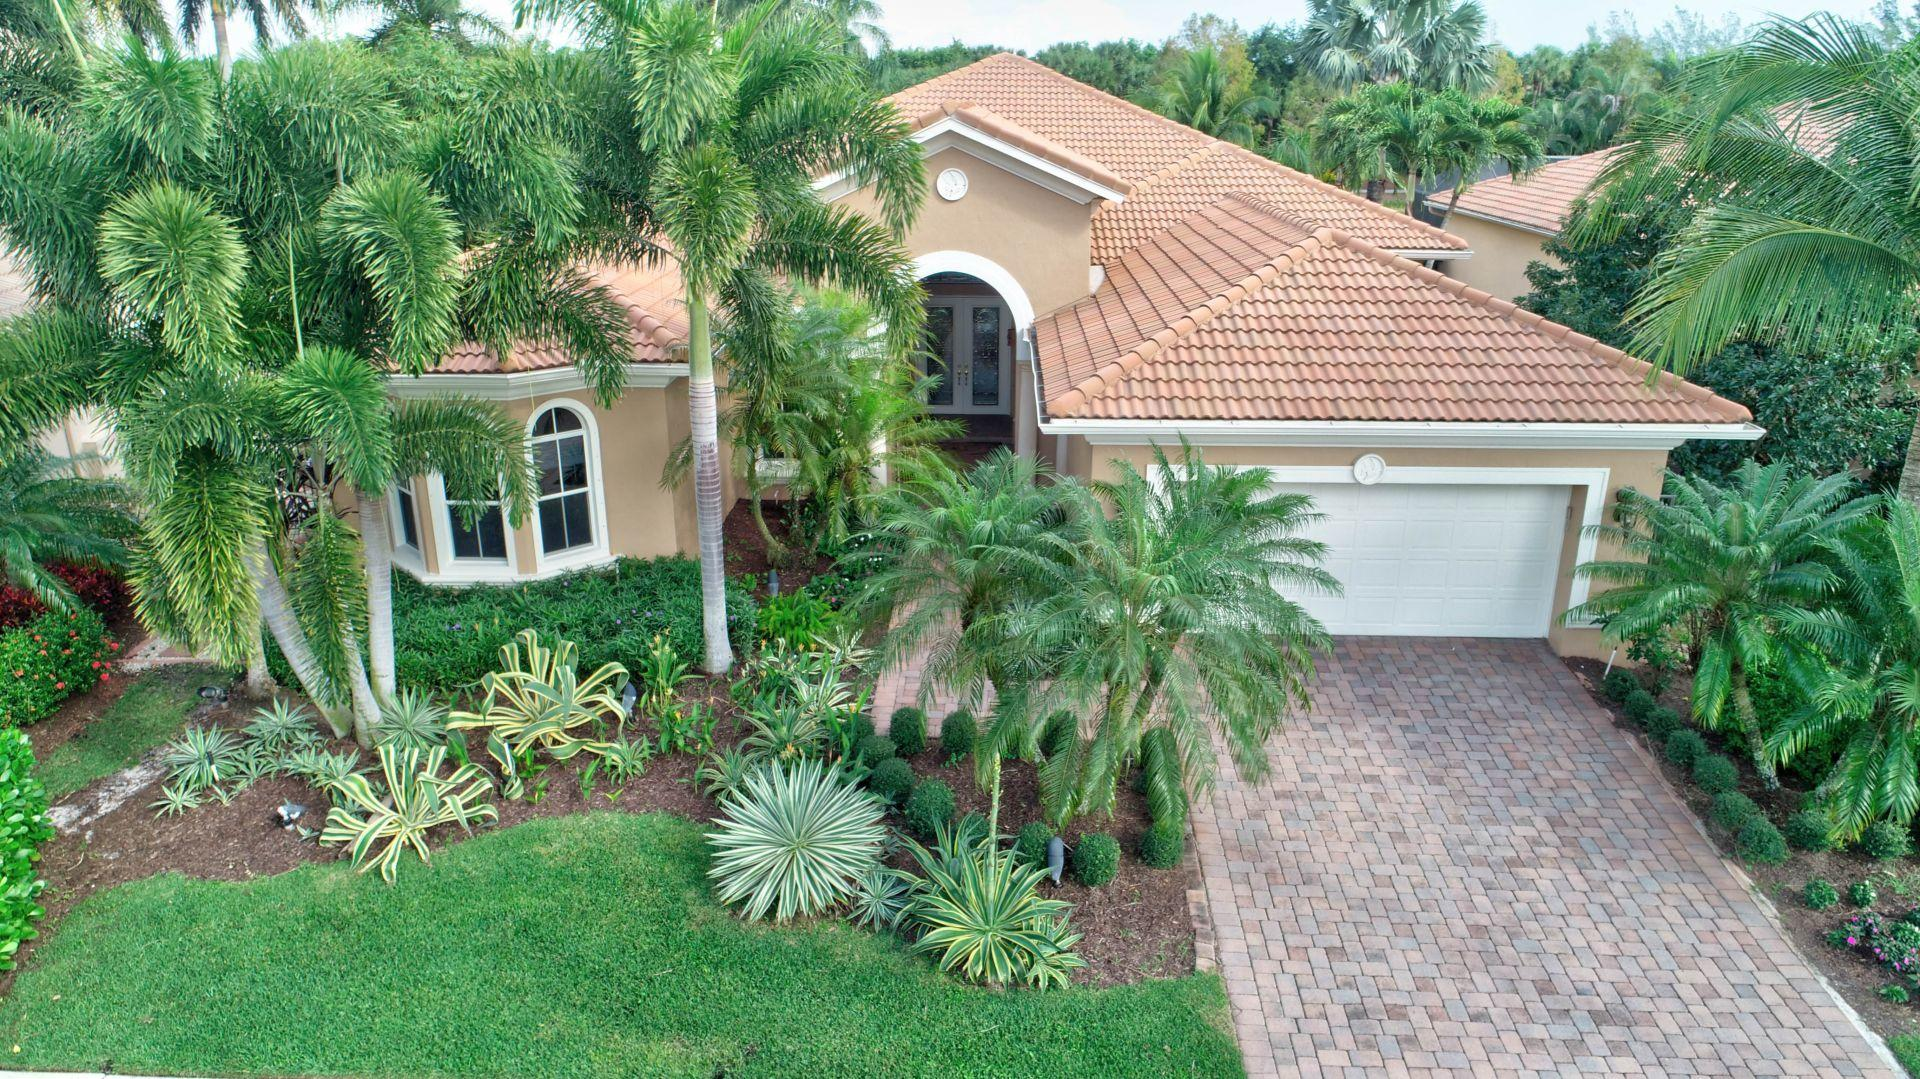 Details for 16486 Braeburn Ridge Trail, Delray Beach, FL 33446